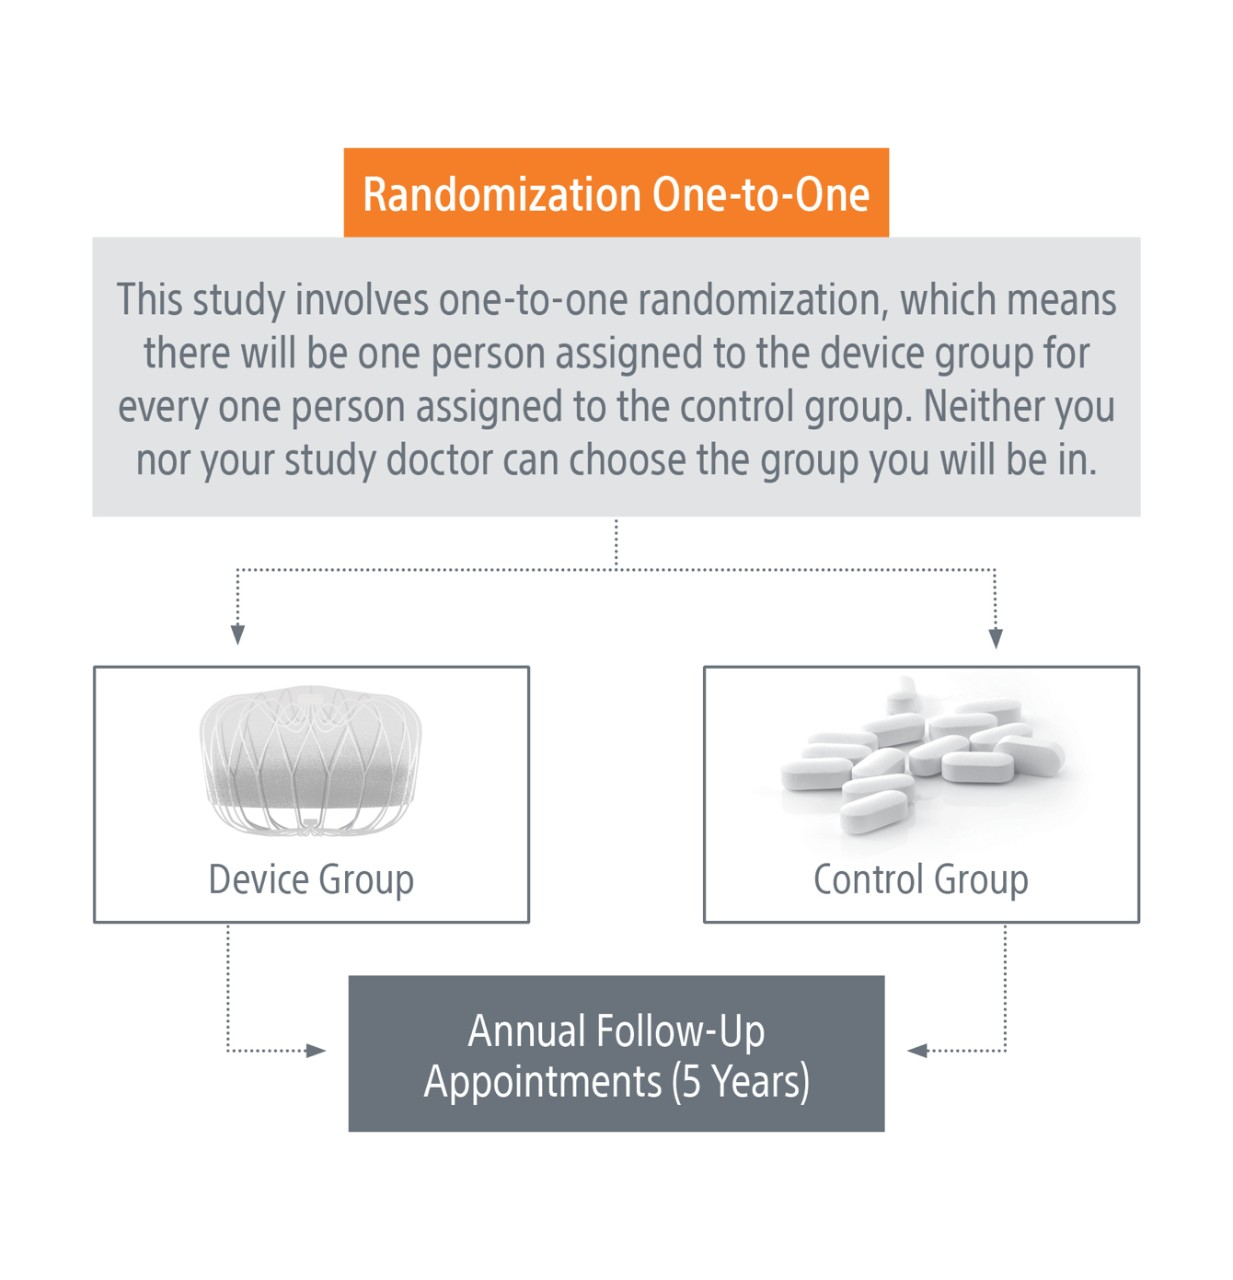 This study involves 1:1 randomization, which means there will be one person assigned to the device group for every one person assigned to the control group. Neither you nor your study doctor can choose the group you will be in.